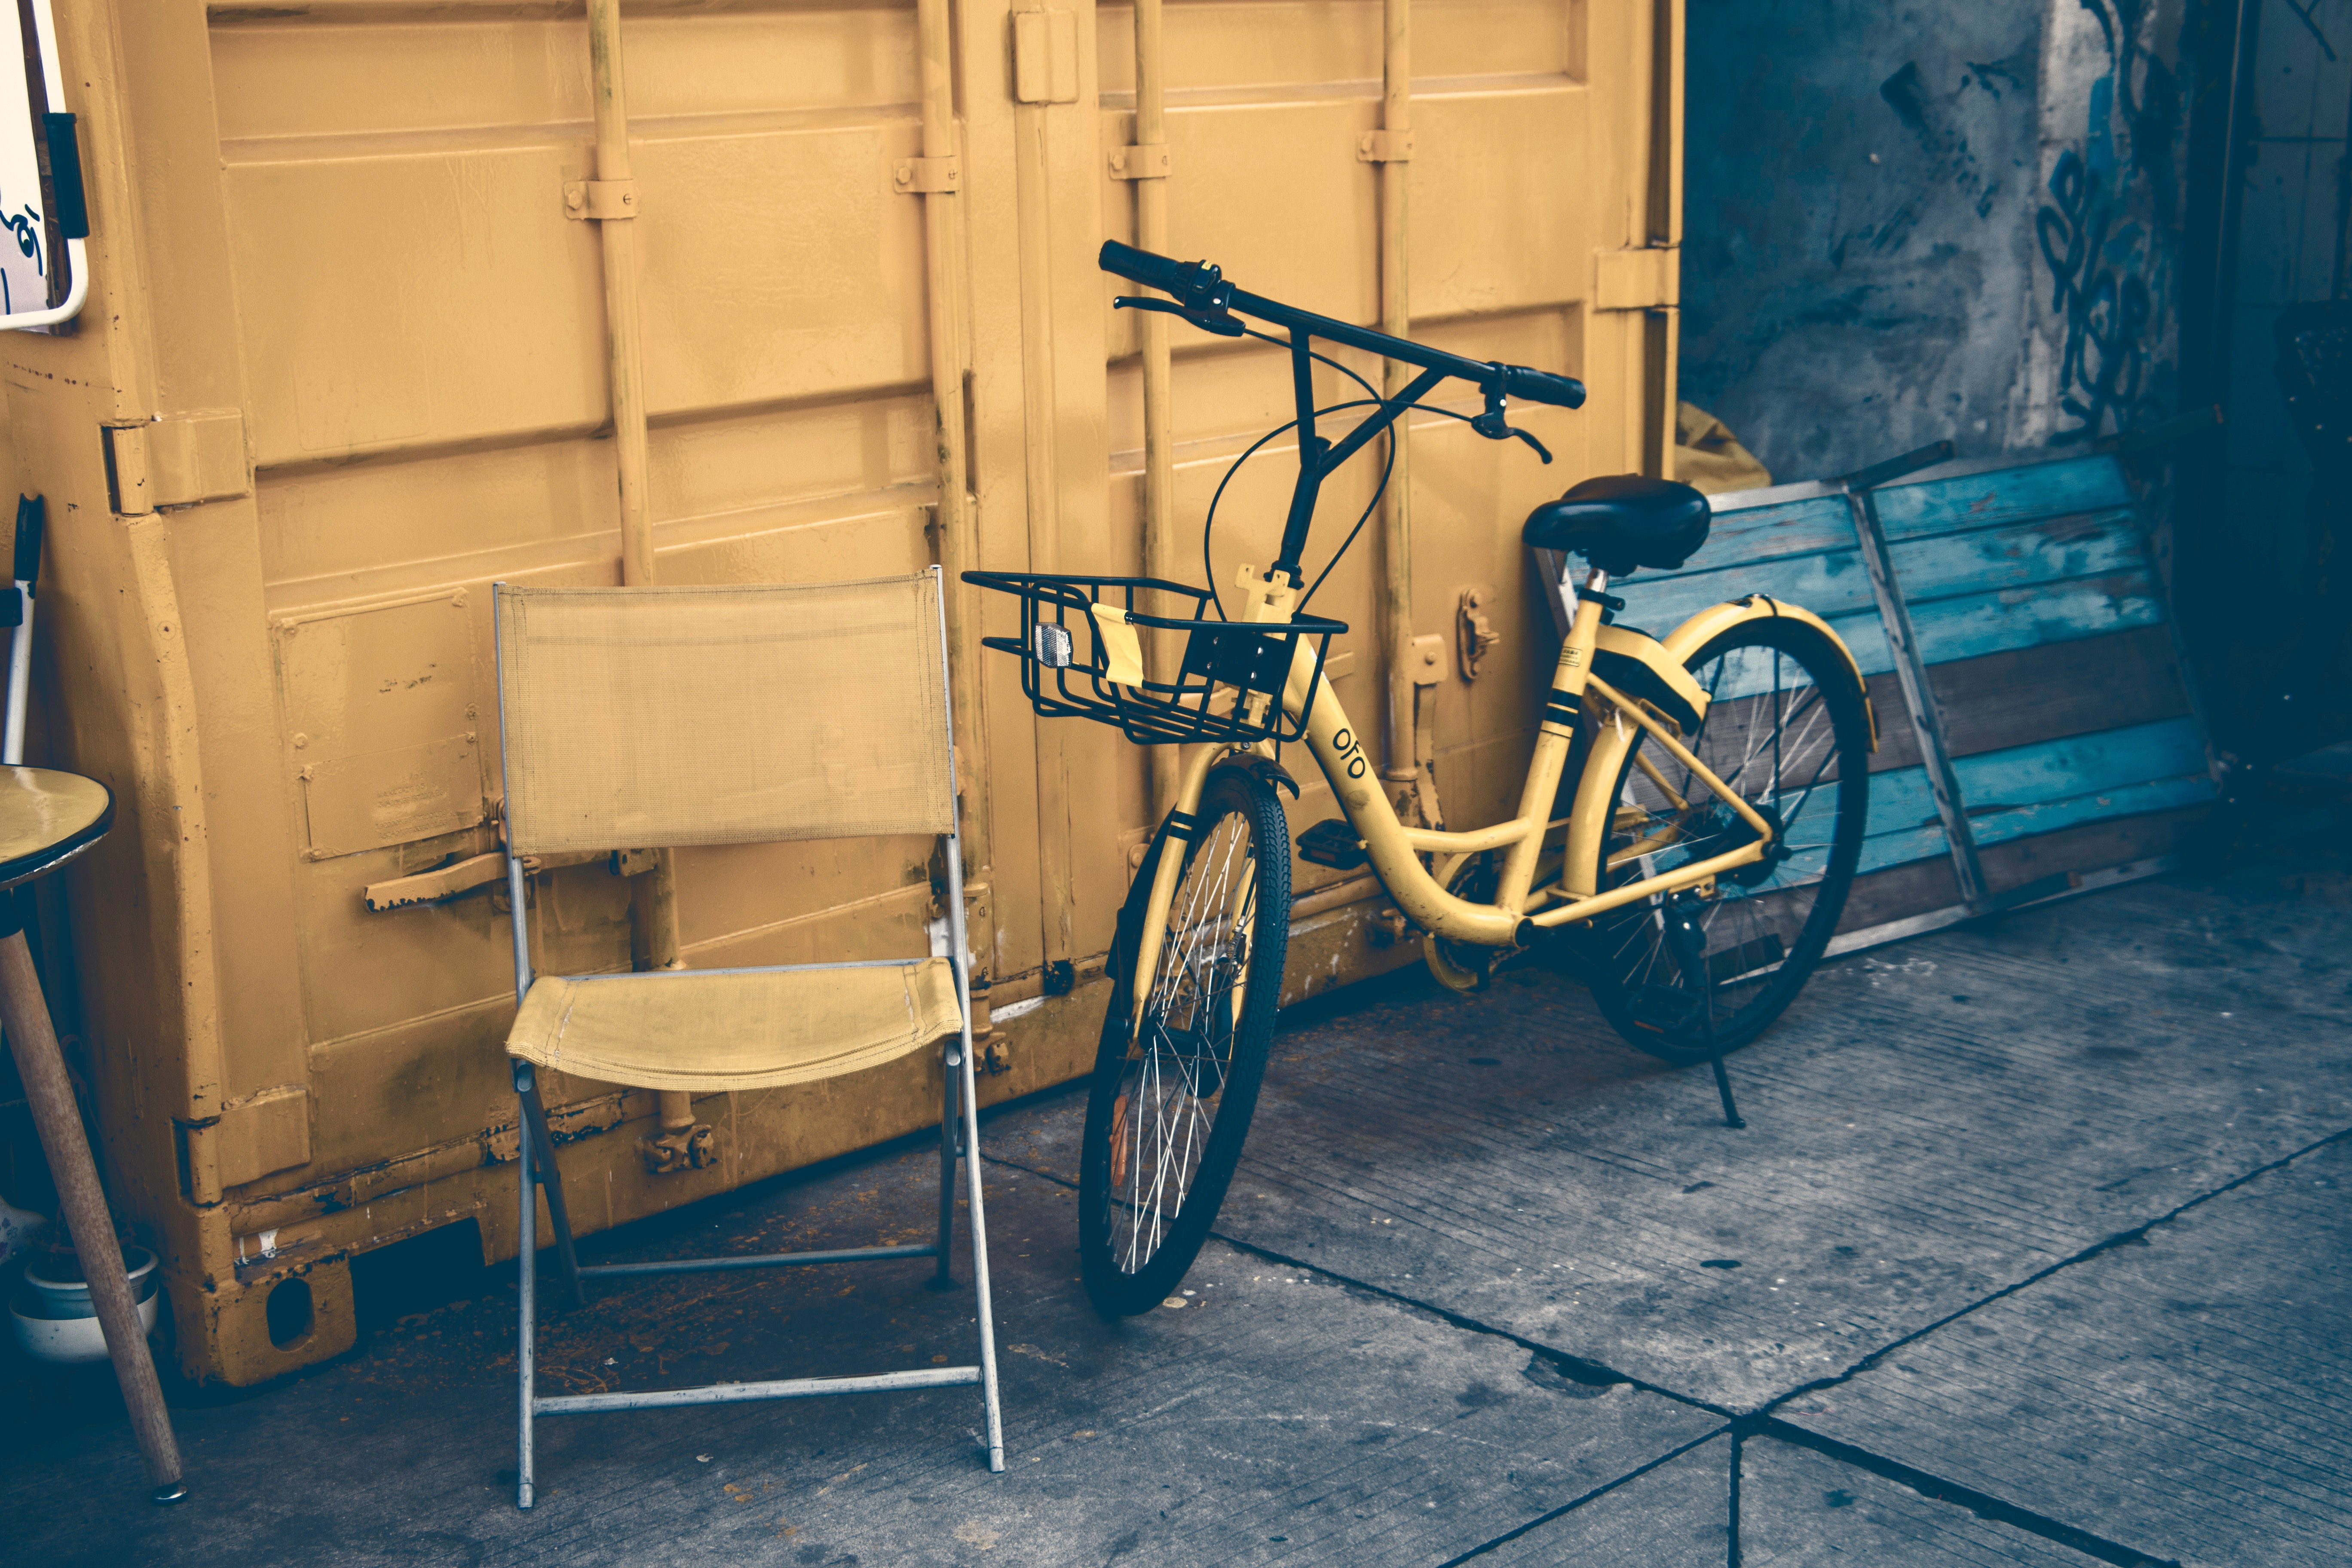 Yellow shipping container with yellow bike and chair